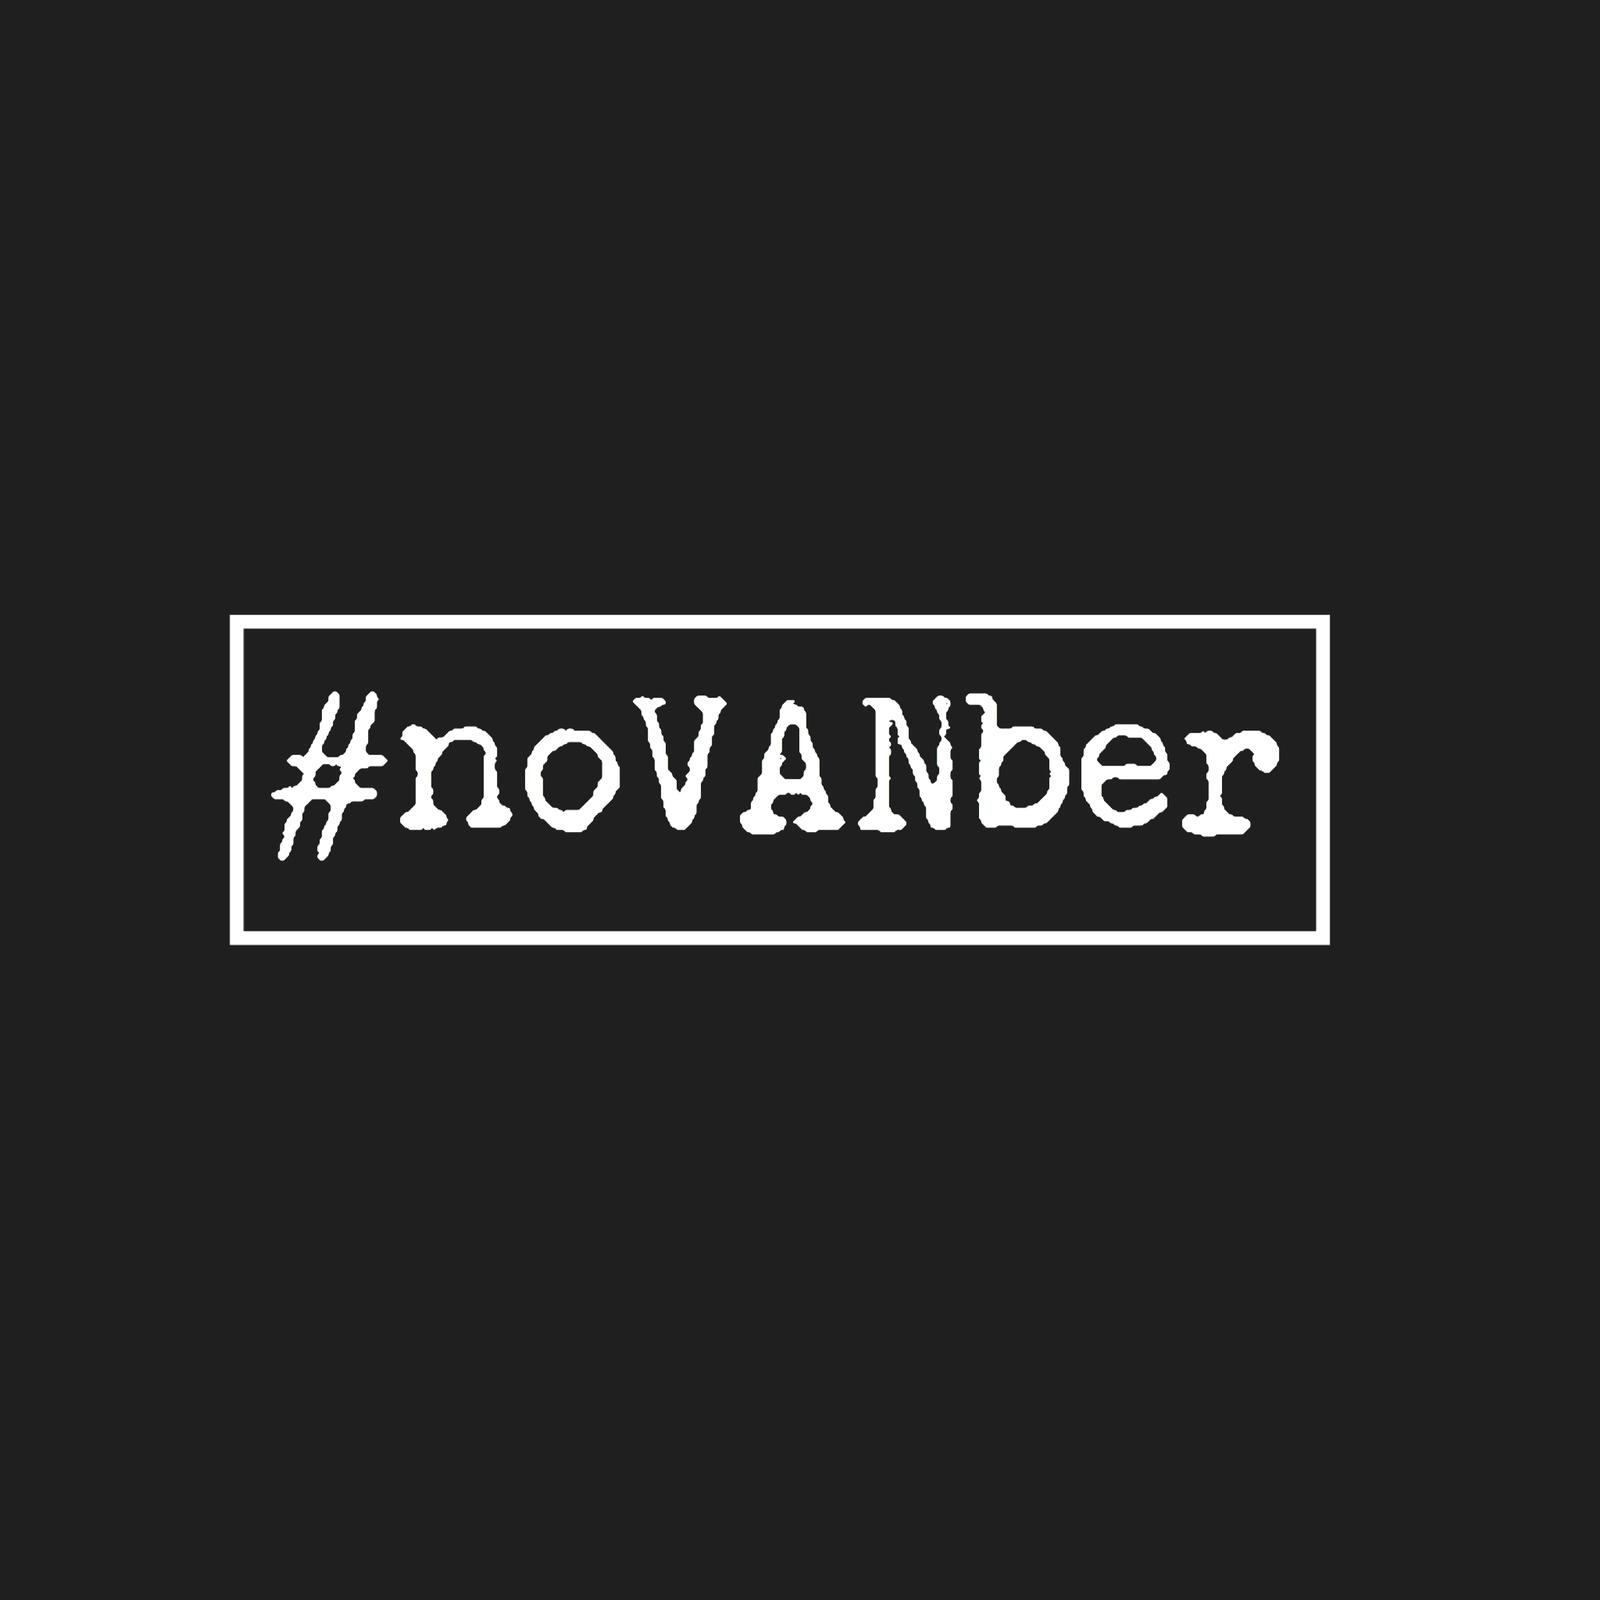 #noVANber campaign hits over 23,000 signatures in just two weeks